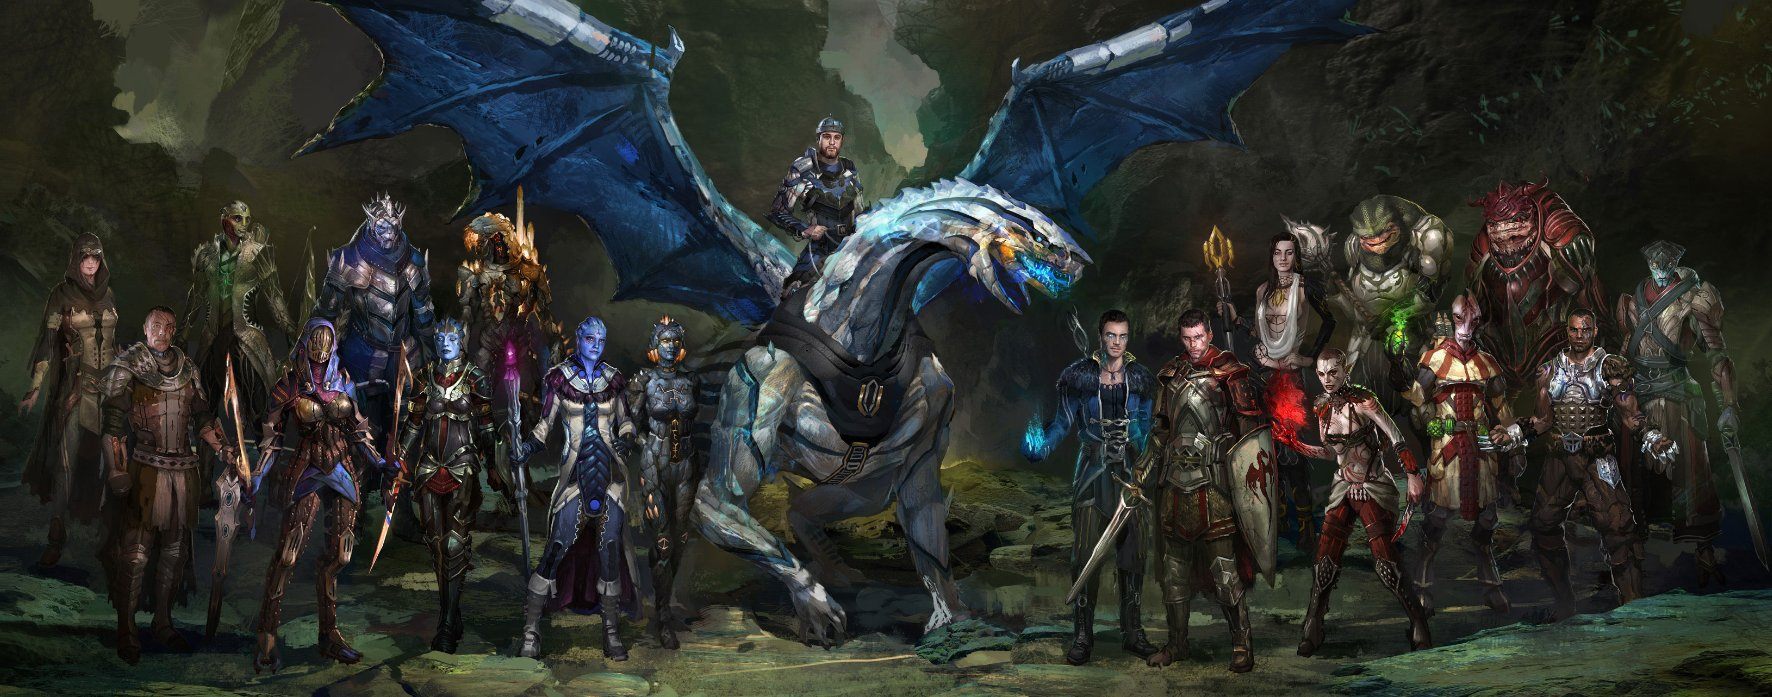 Dragon Age X Mass Effect